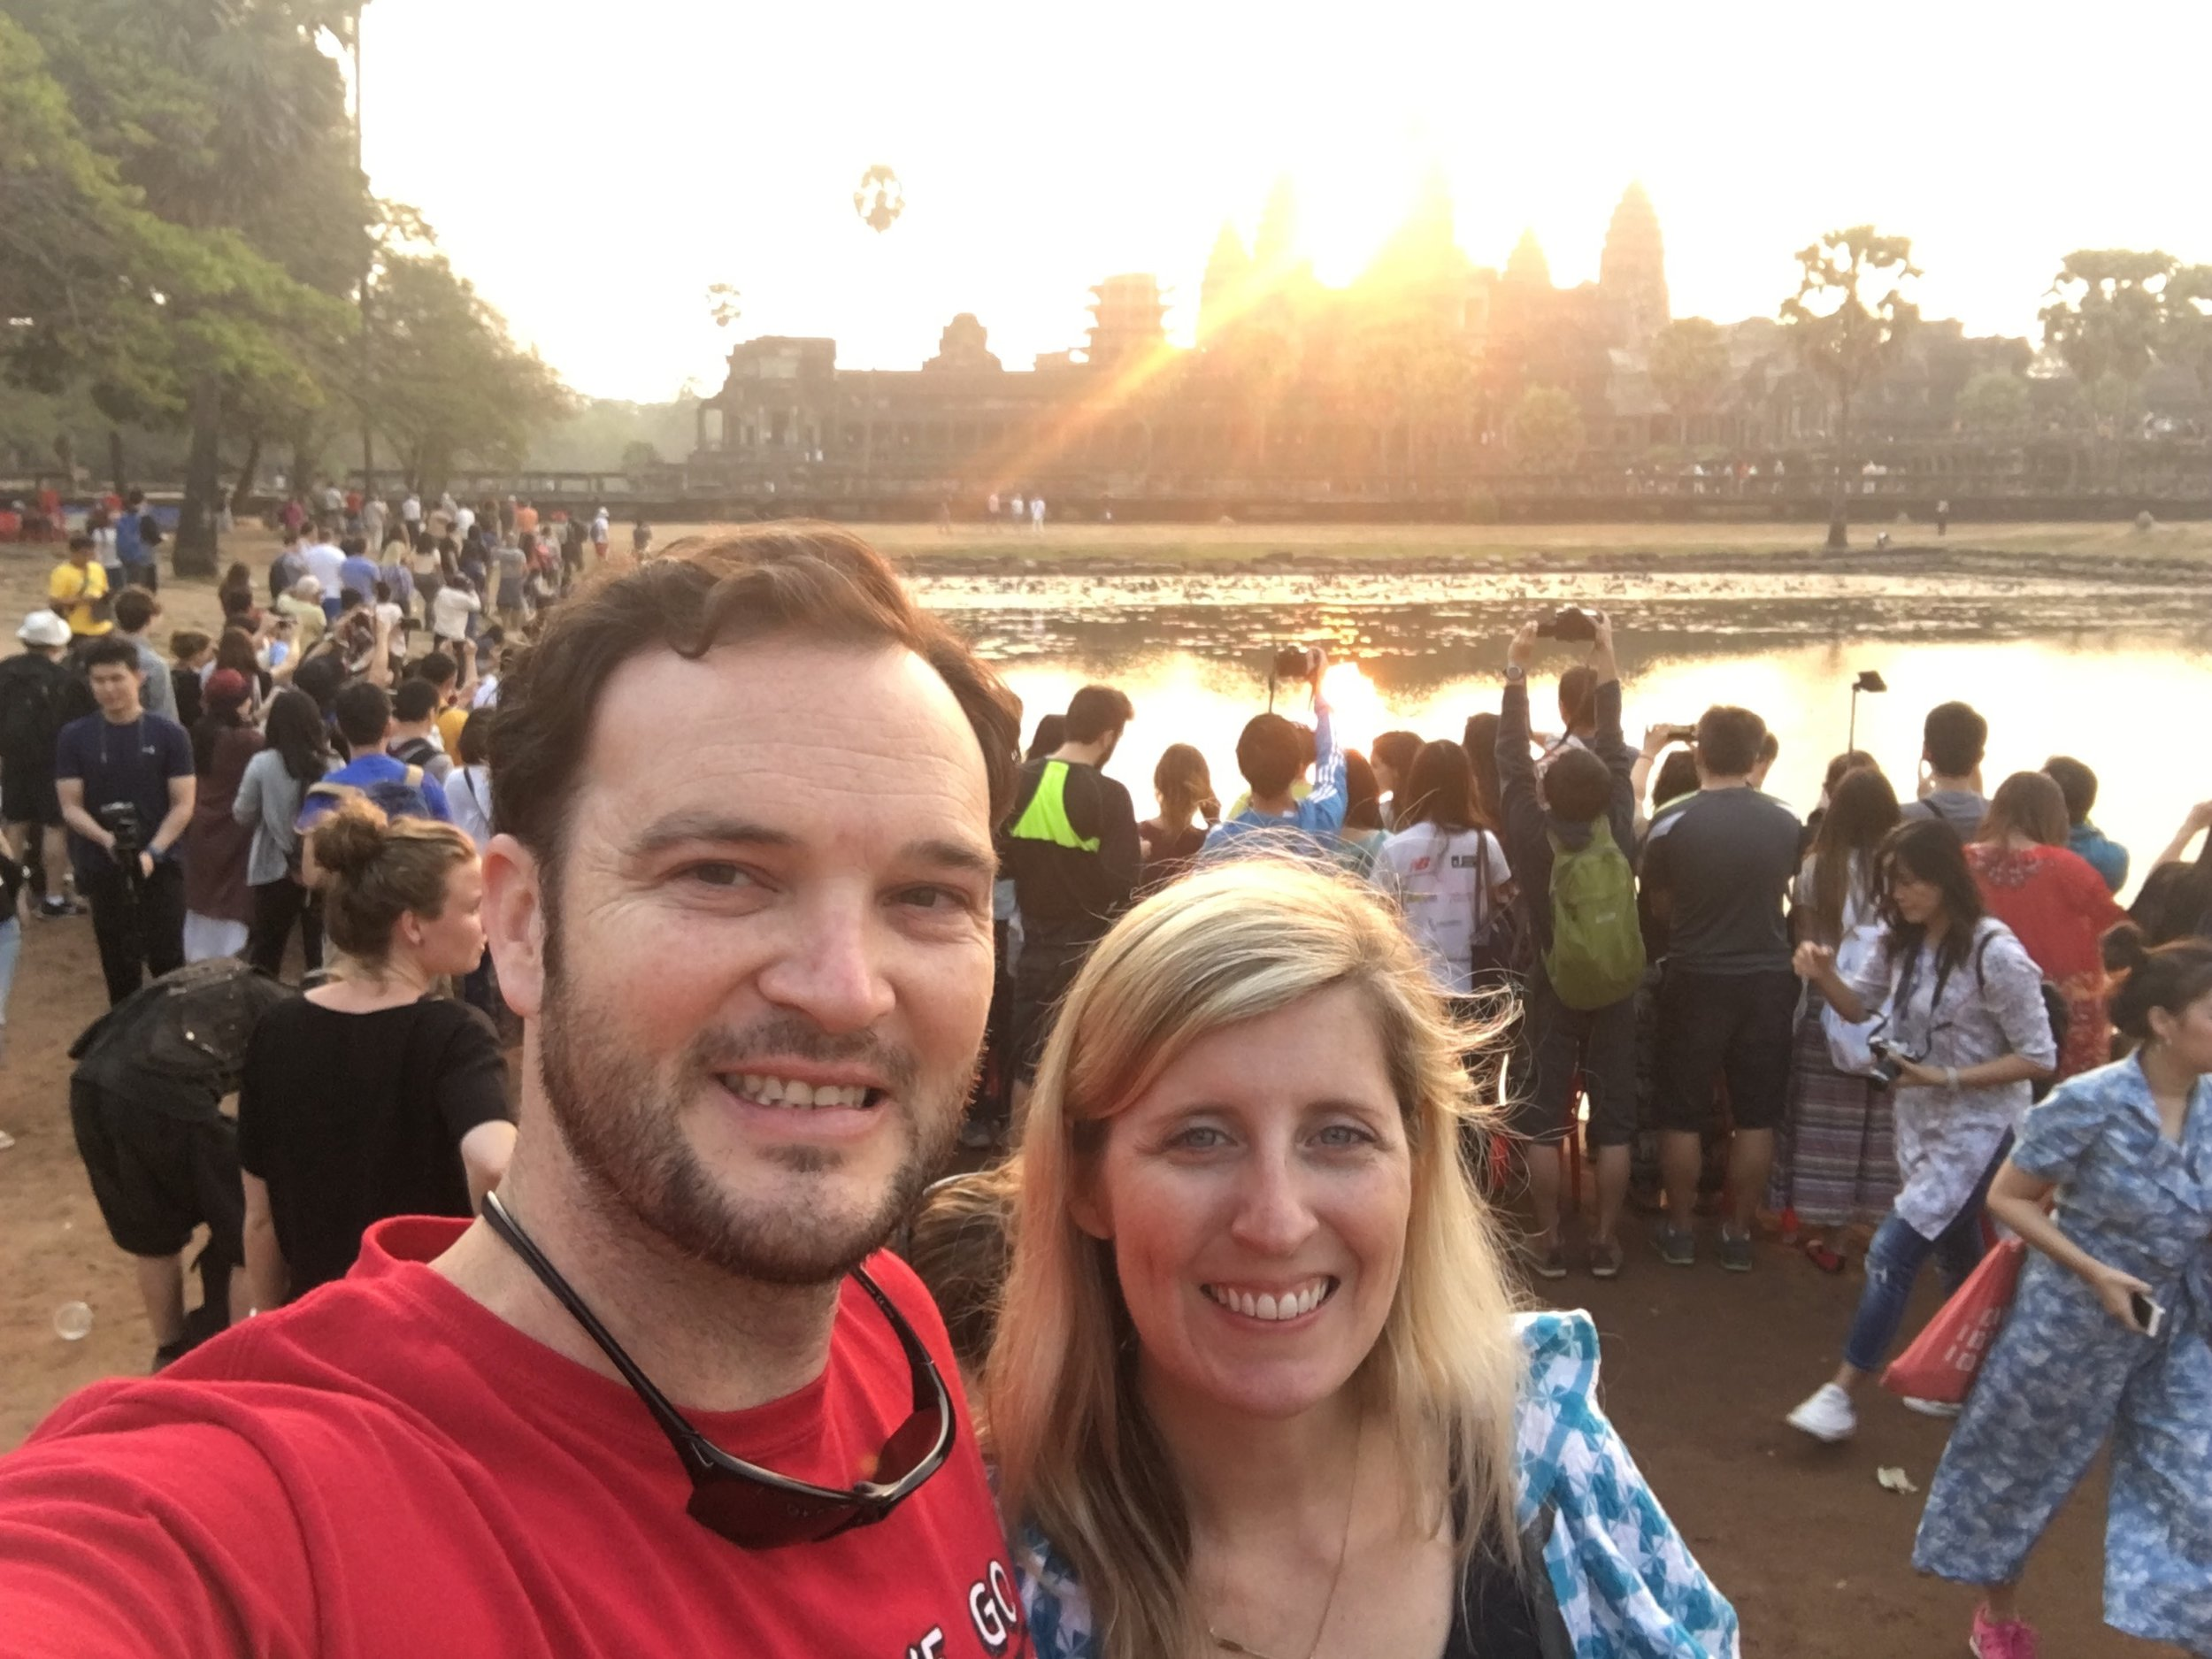 Watching the sunrise at Angor Wat. The mission trip was incredible. It was exhausting in every way imaginable. We couldn't take photos of the kids we worked with for privacy reasons, but this photo was from the end of the trip as our team recouped from the week in Phonem Penh.